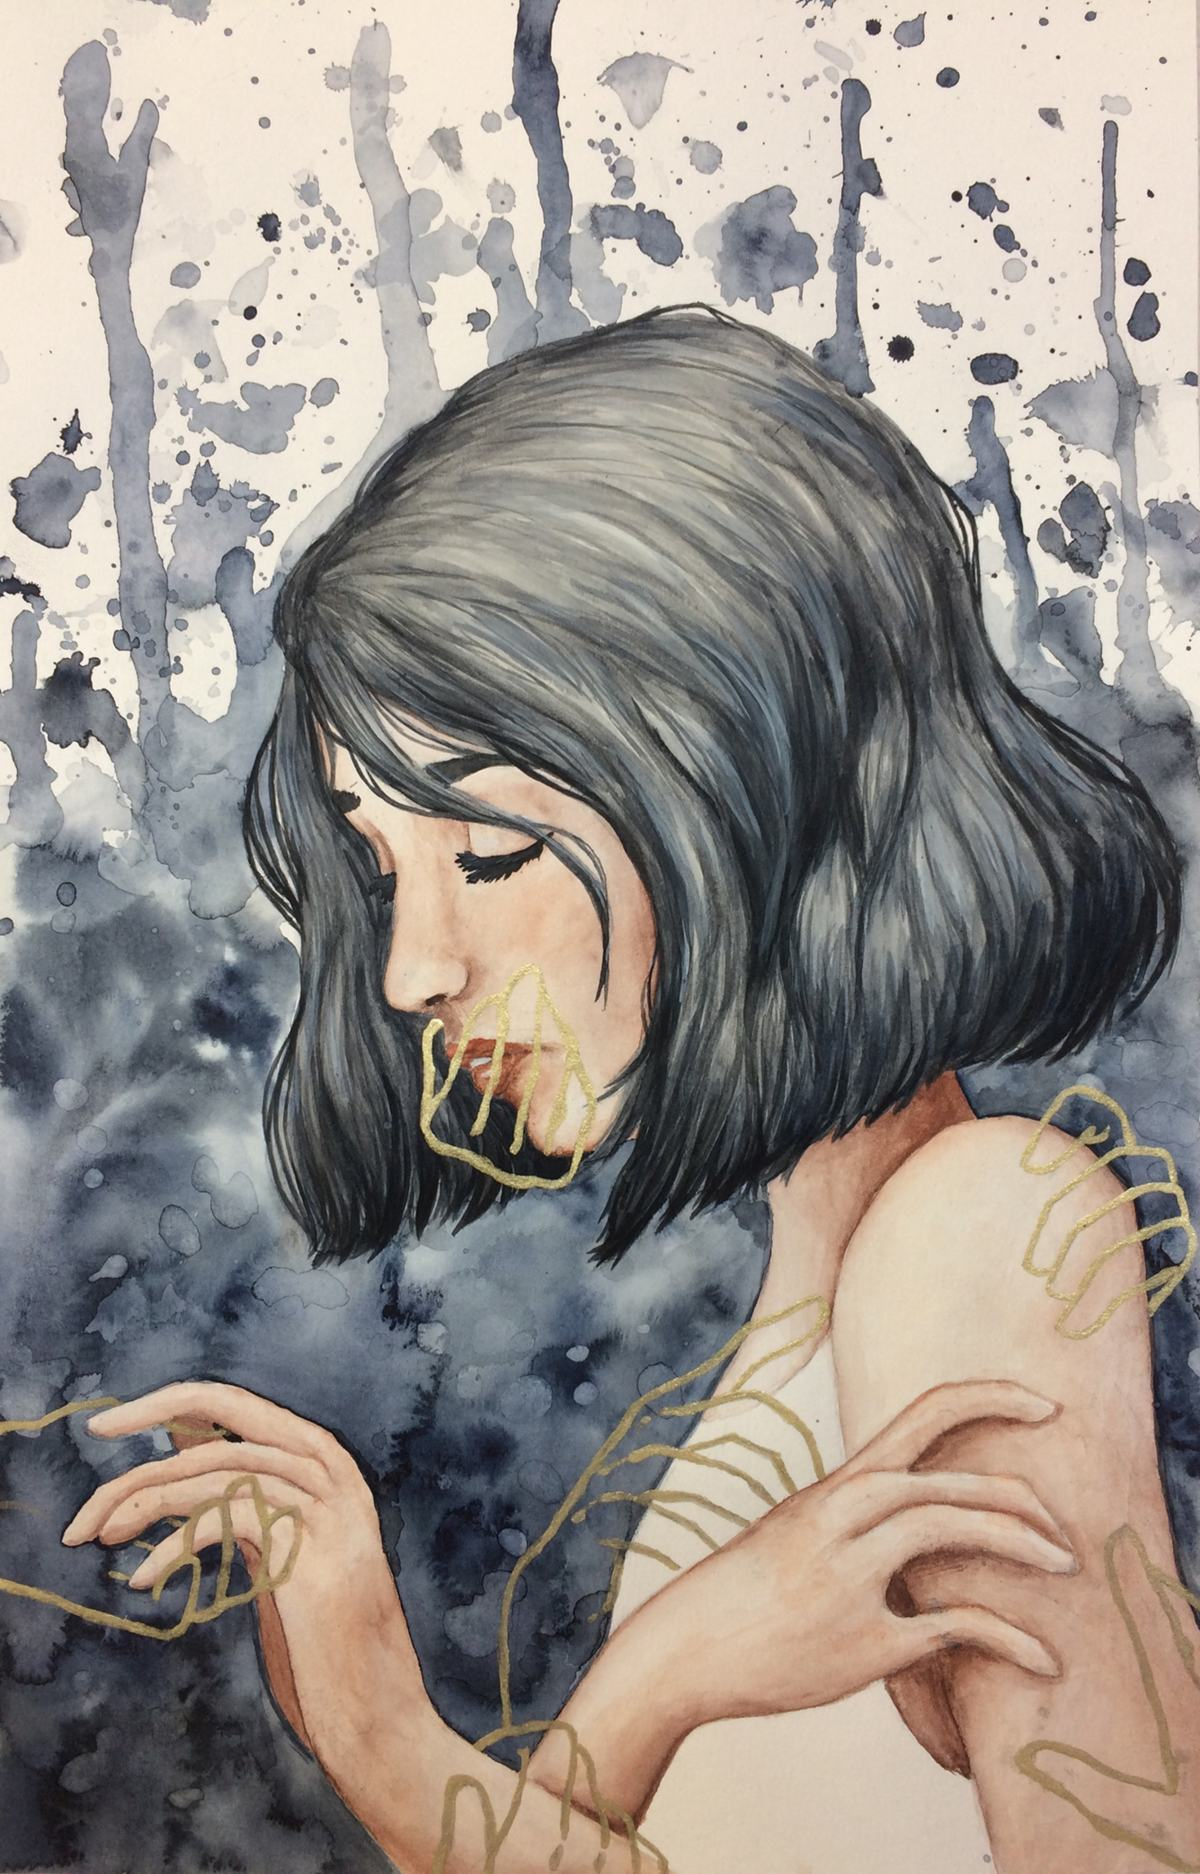 Watercolor of a dark-haired girl, seen in profile. Outlines of hands touch her arms and shoulder and cover her mouth.